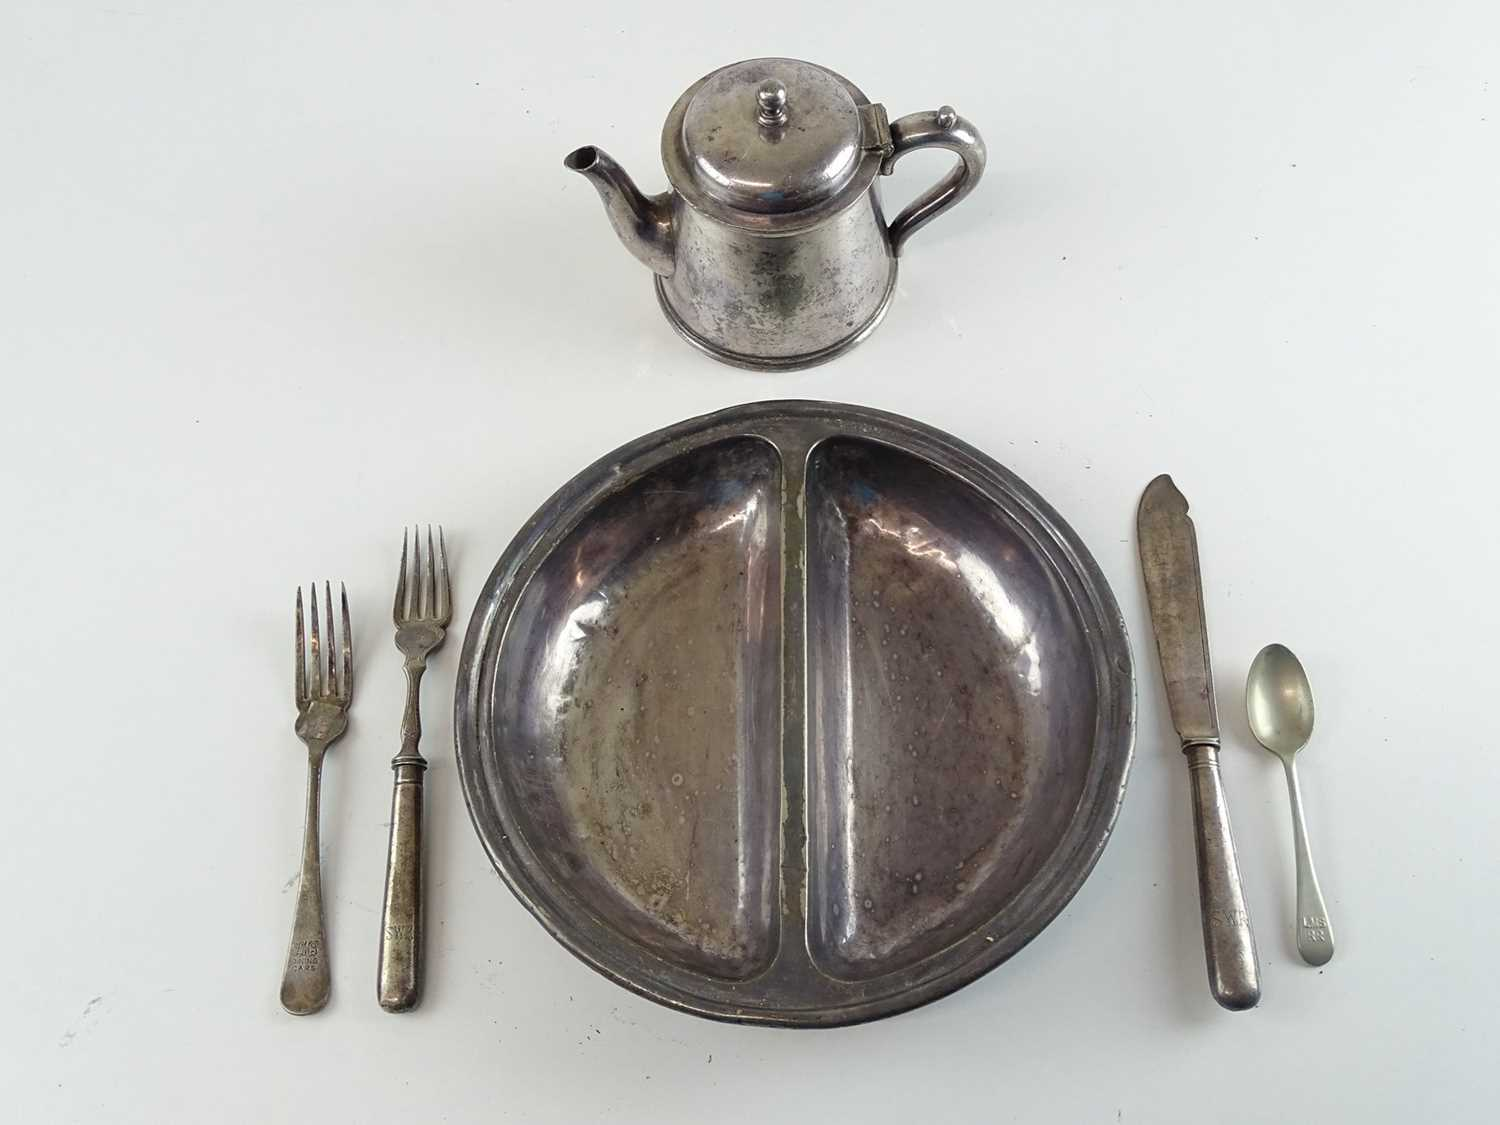 A silver plate 'place setting' comprising coffee pot, serving dish and various cutlery from